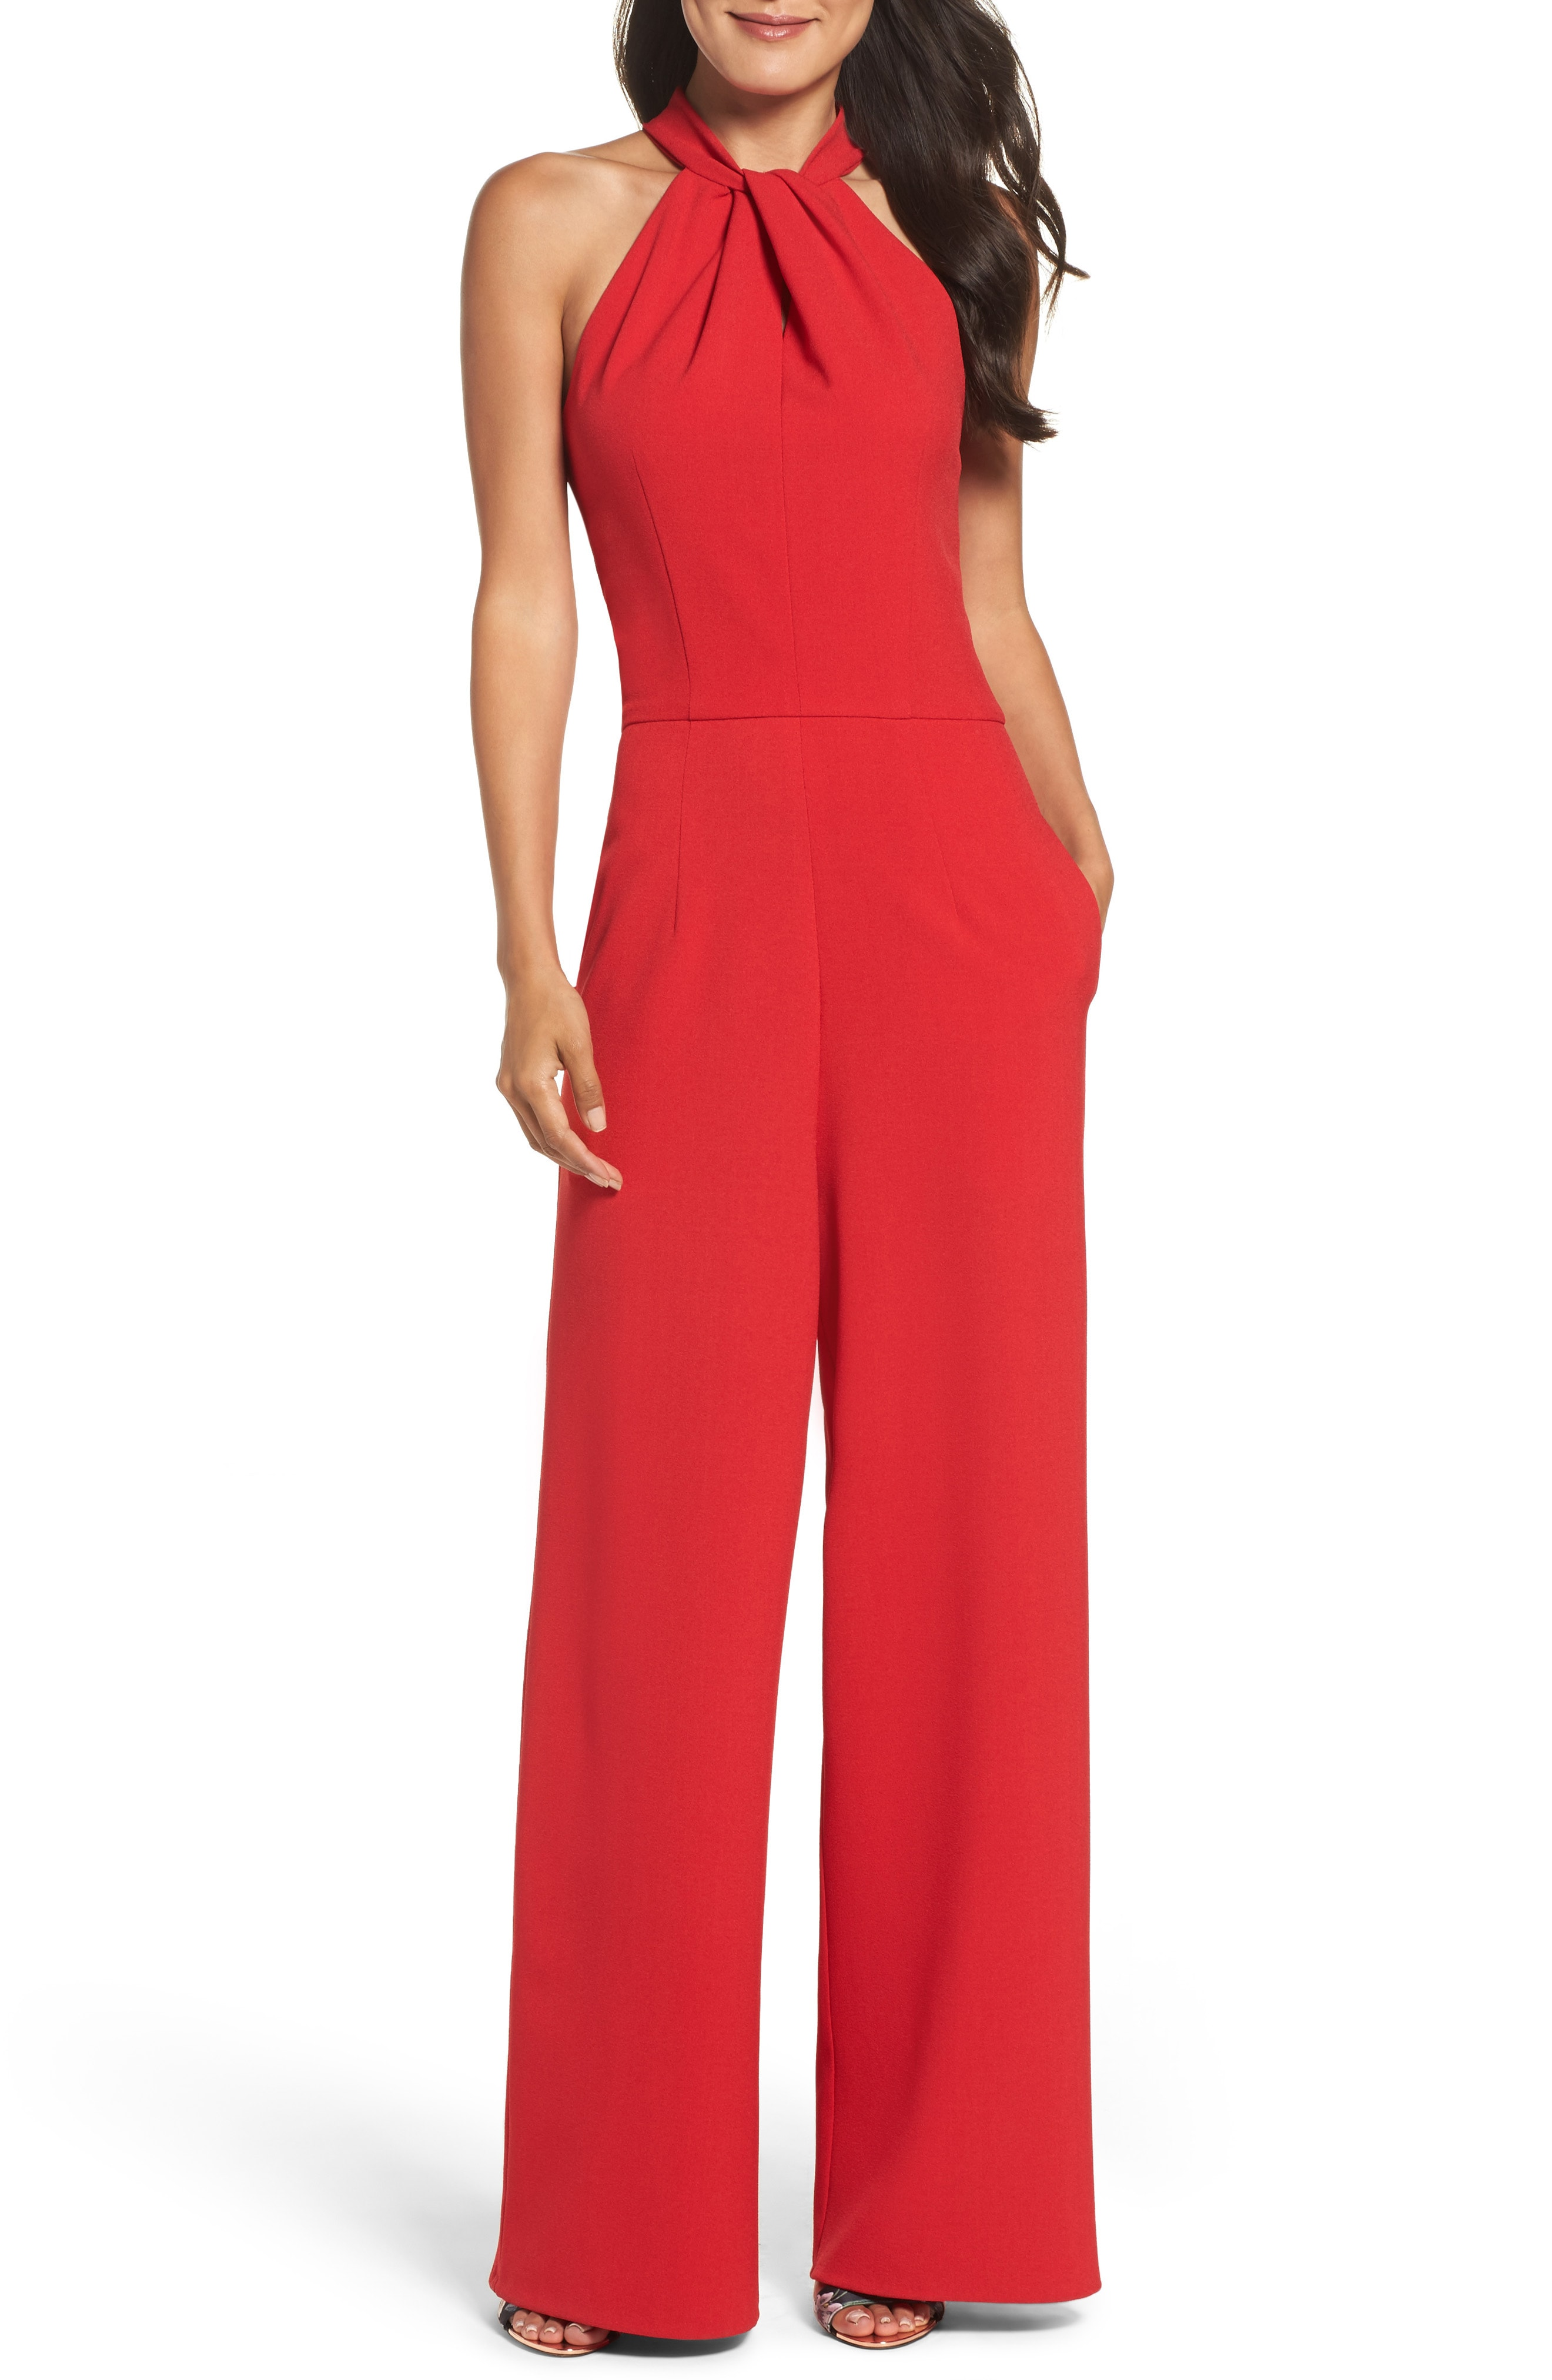 Women's Red Jumpsuits & Rompers | Nordstrom